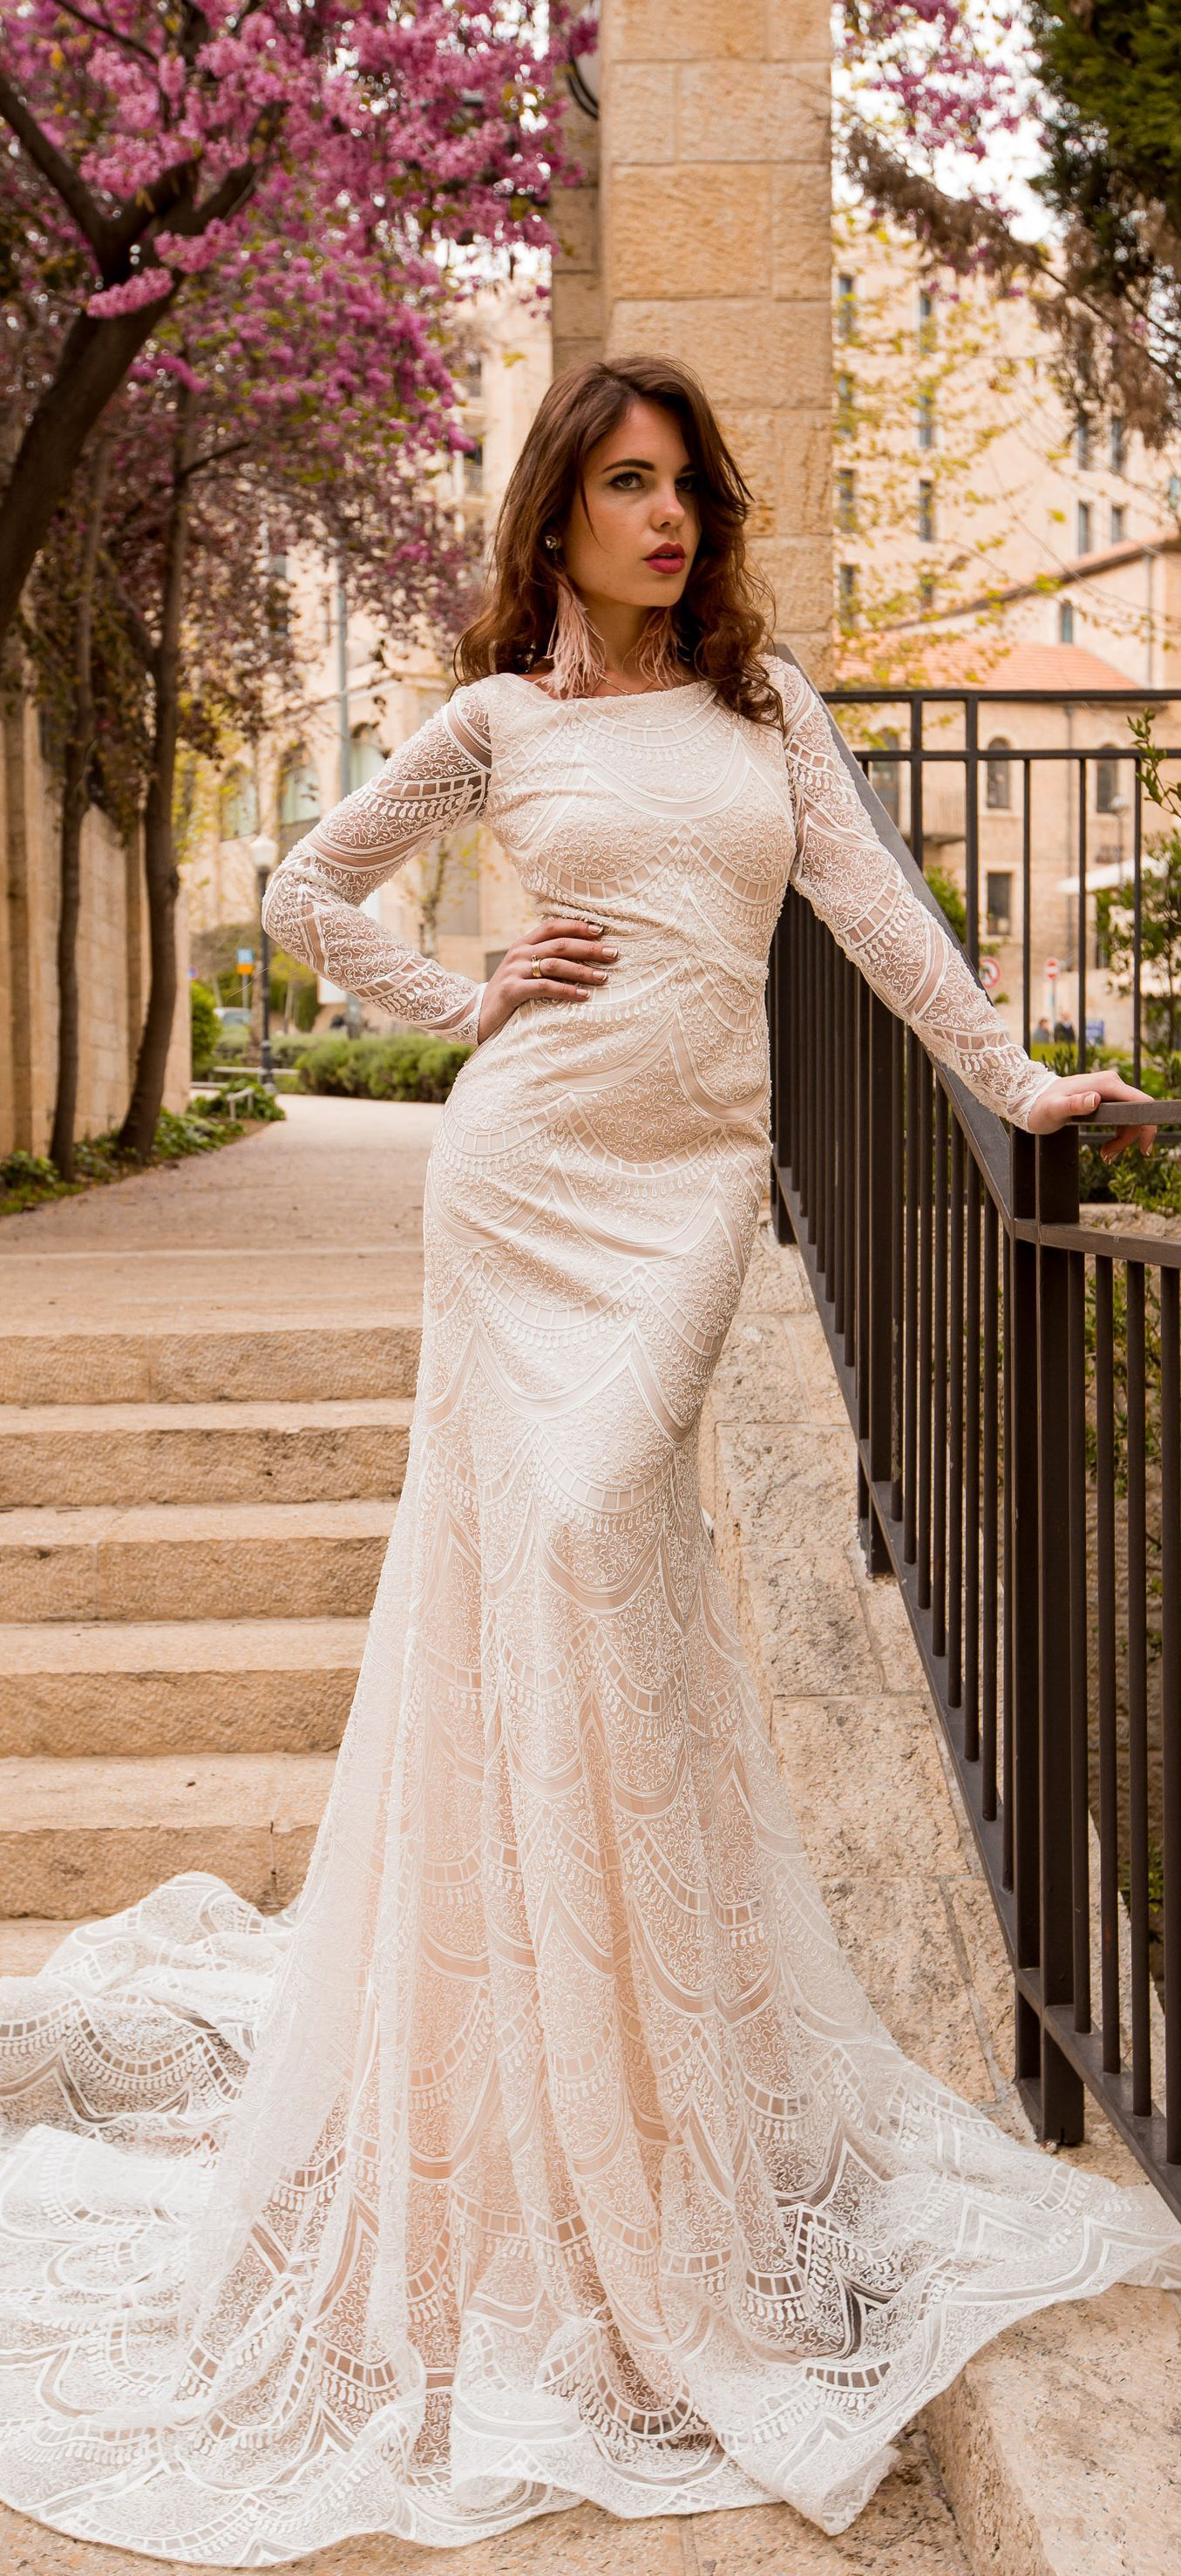 Lace v neck maxi dress april 2019 Mermaid Lace wedding dress with long sleeves  New Collection